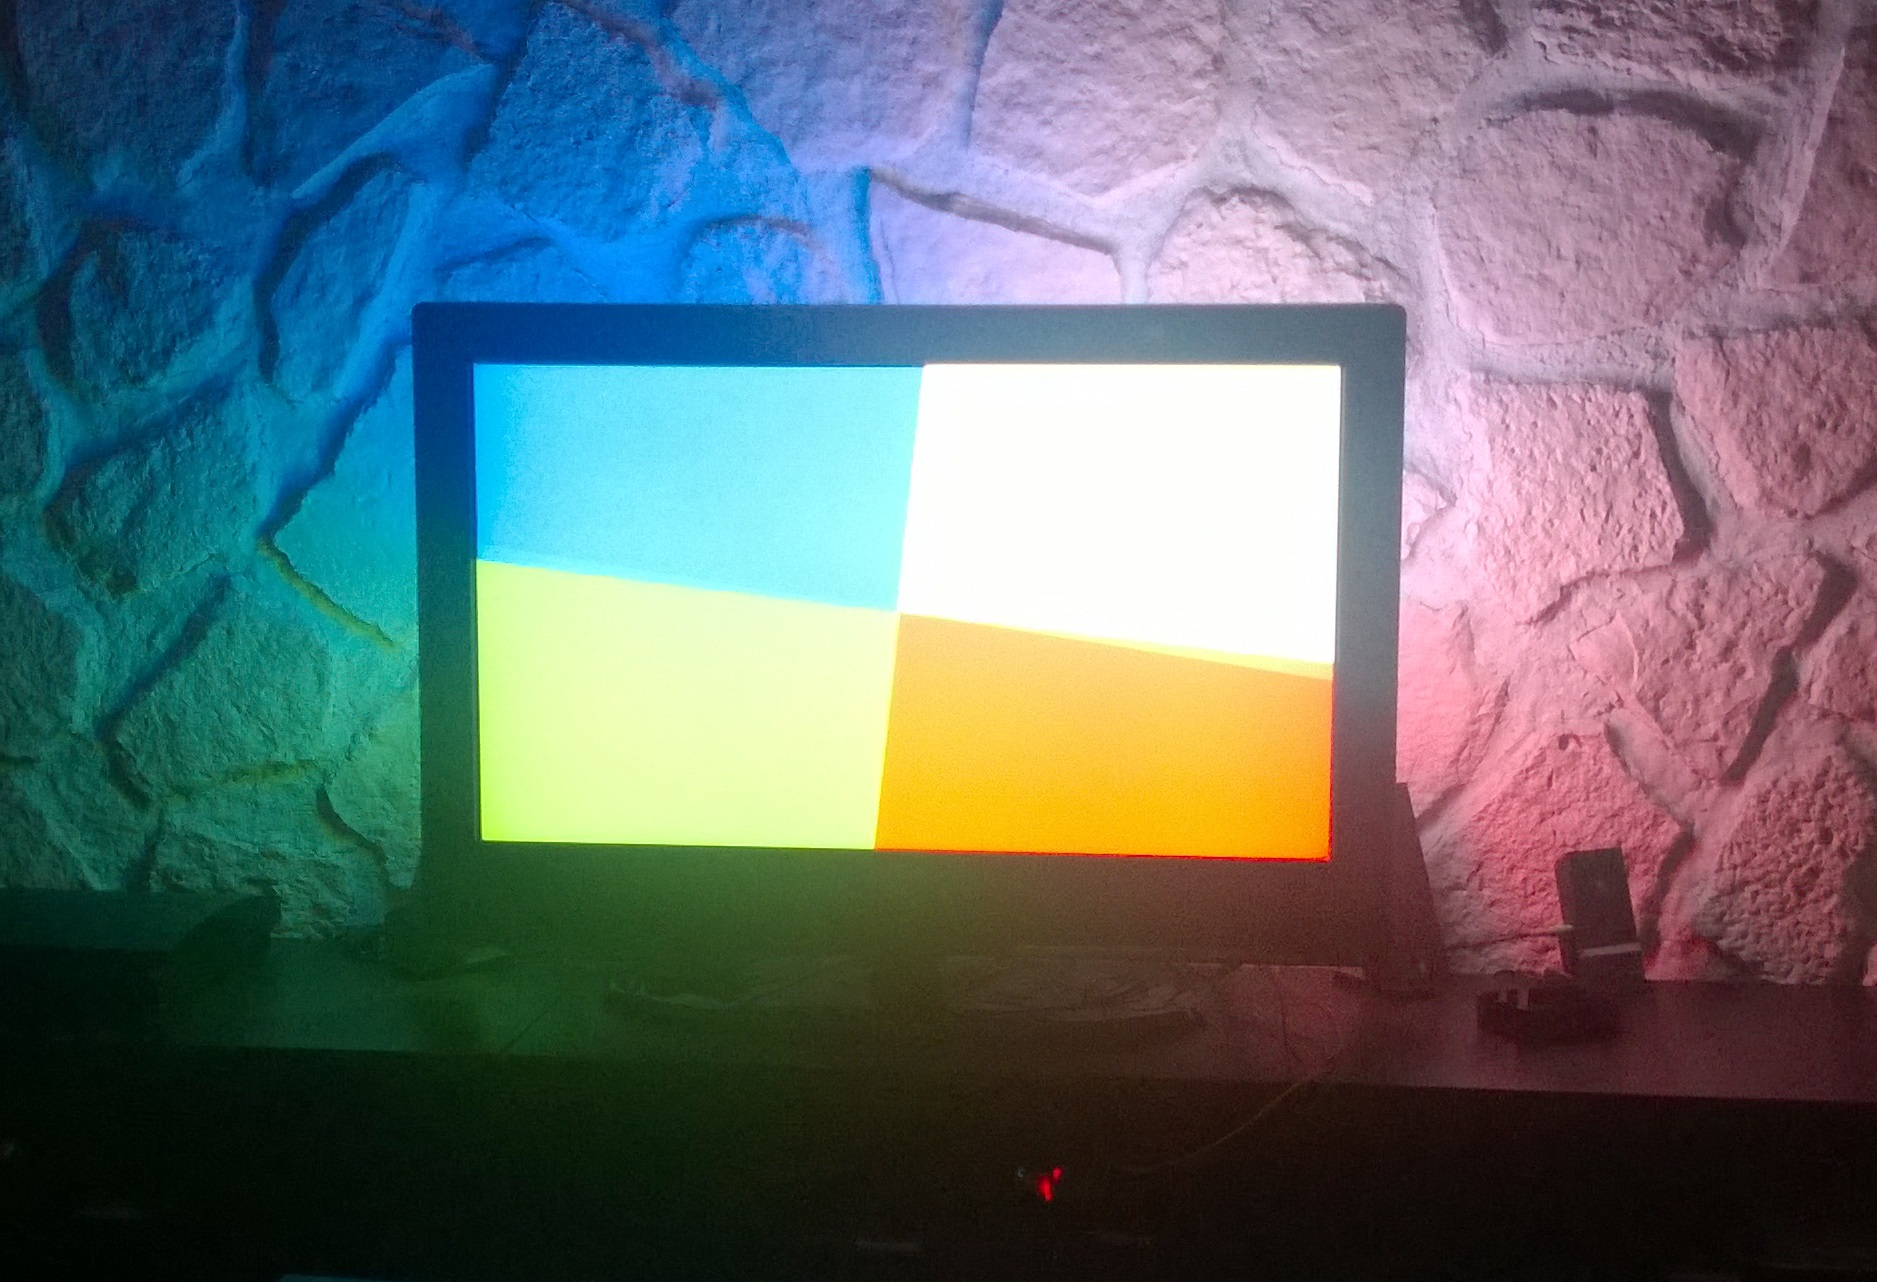 Ambilight with Raspberry Pi and Openelec (part 1)